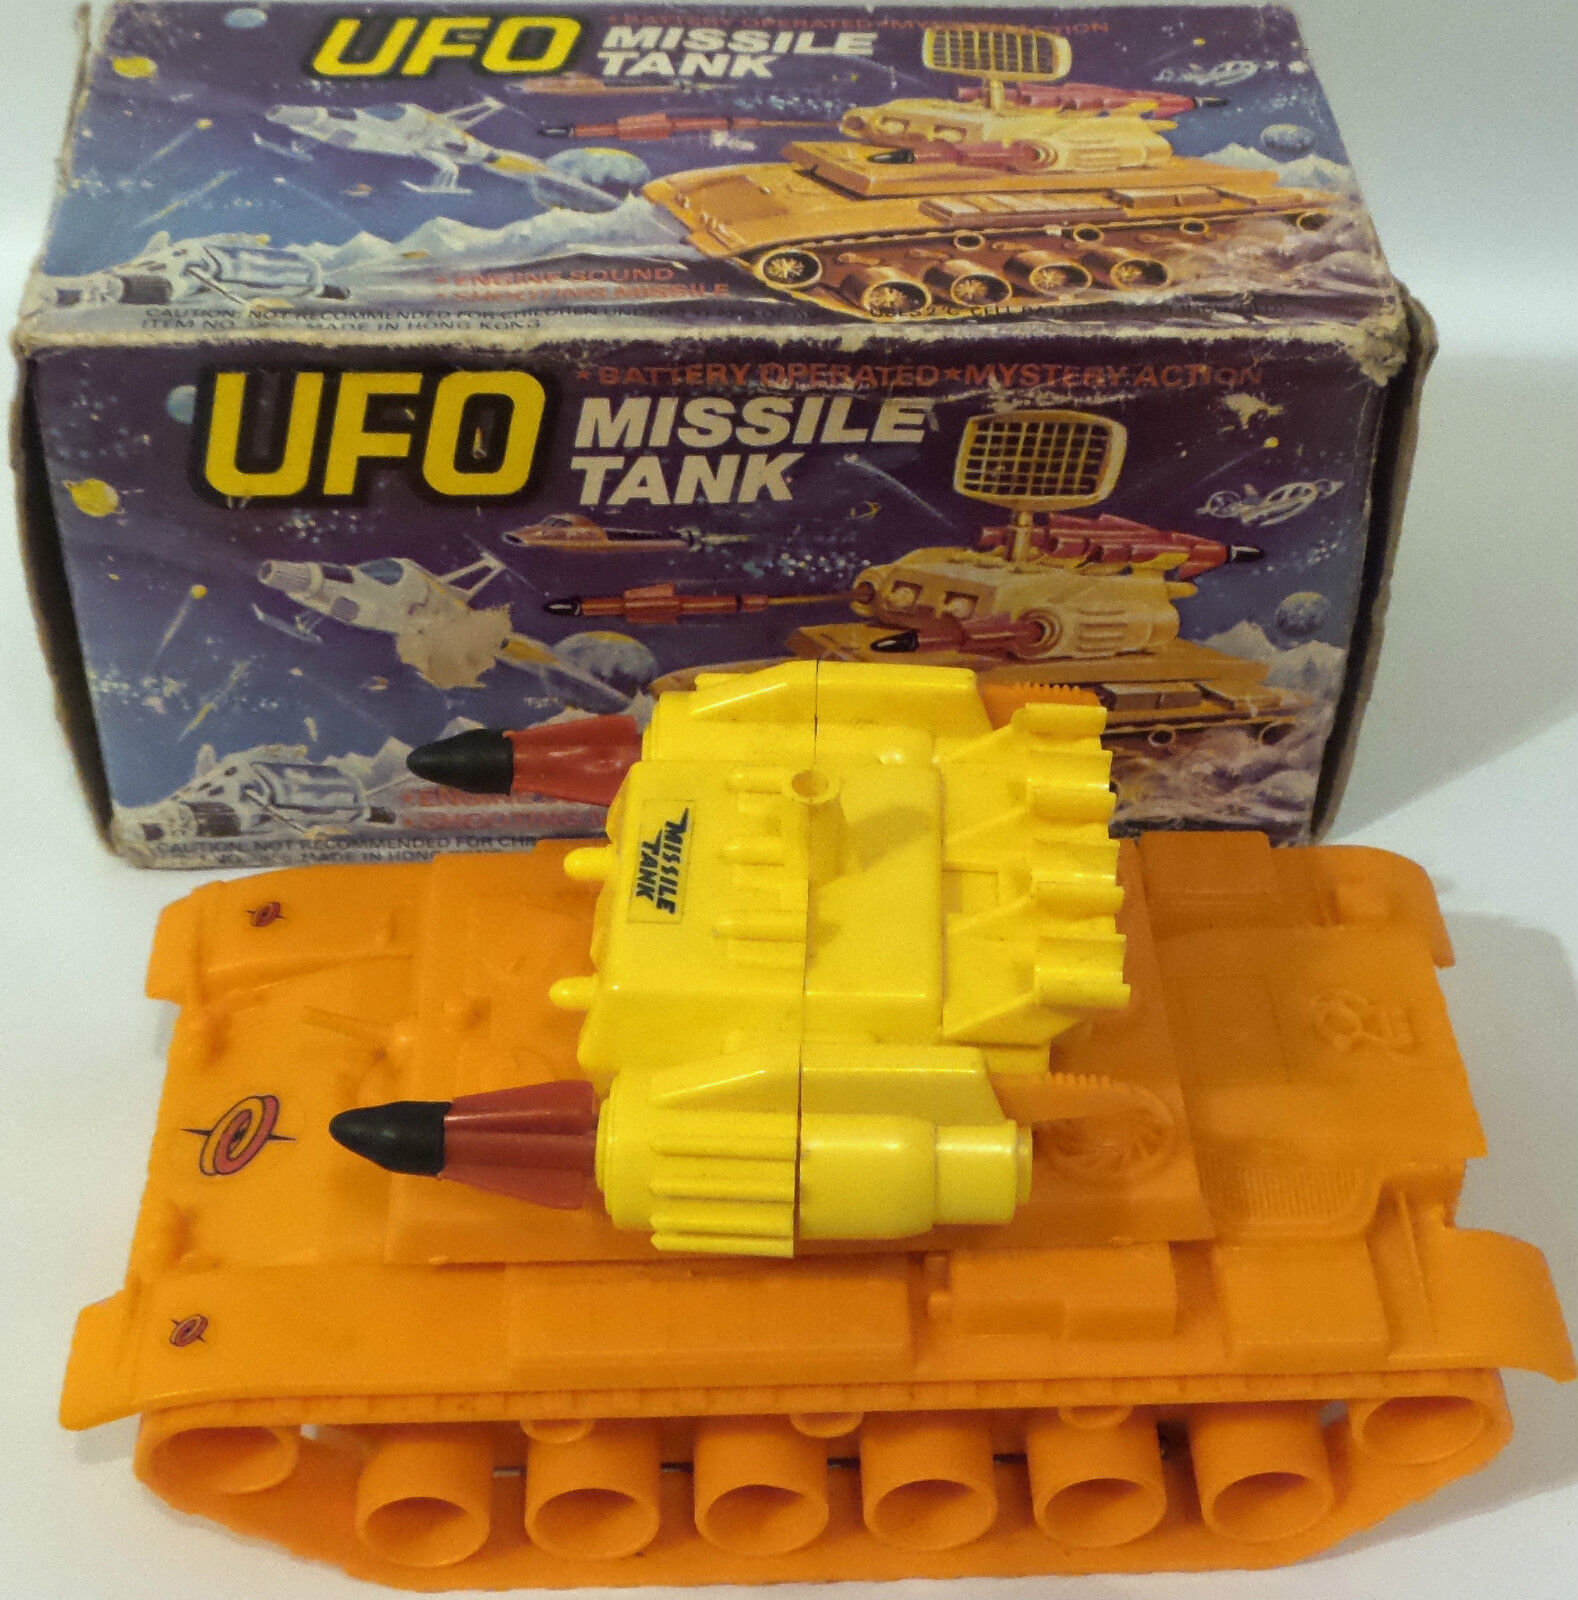 UFO   VERY RARE MISSILE TANK ELECTRONIC MODEL MADE IN HONG KONG. ITEM 2856. (DJ)